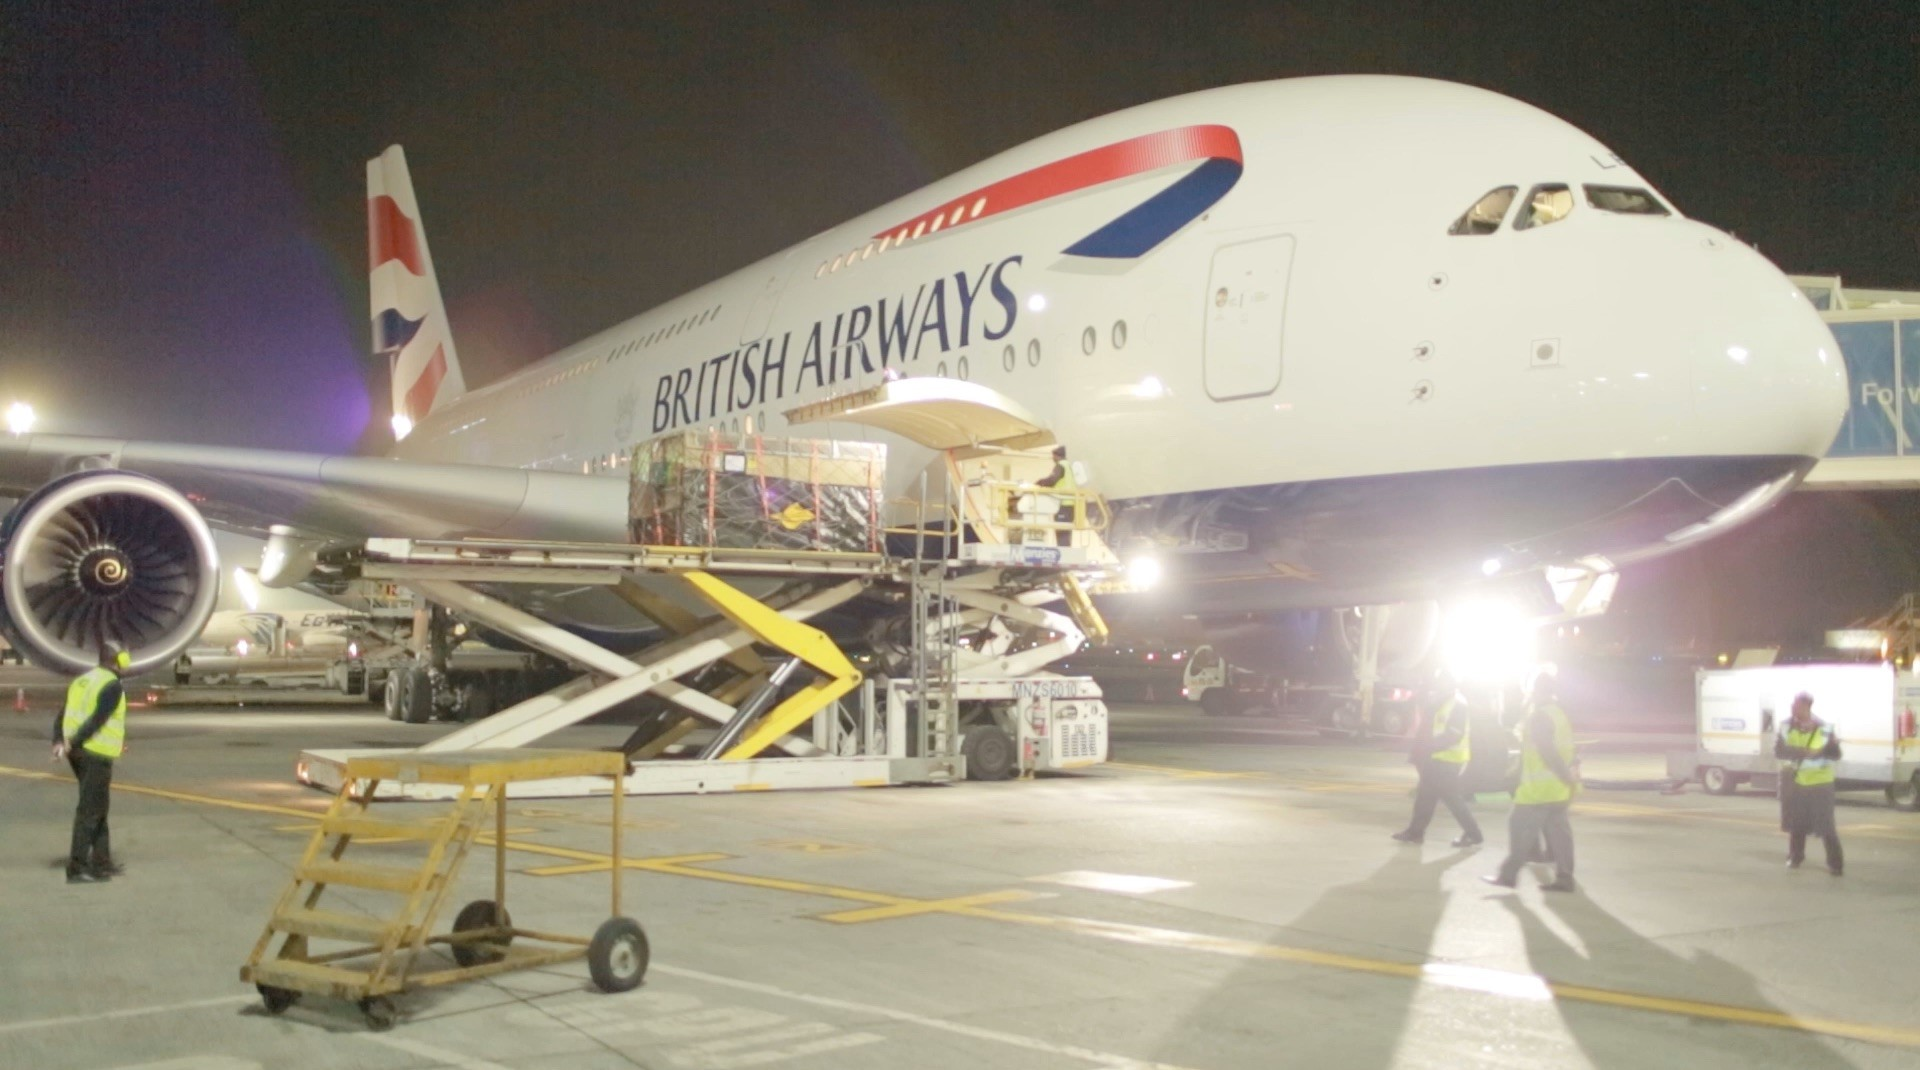 IAG Cargo's first Superjumbo to Miami brings in Heavyweight customers